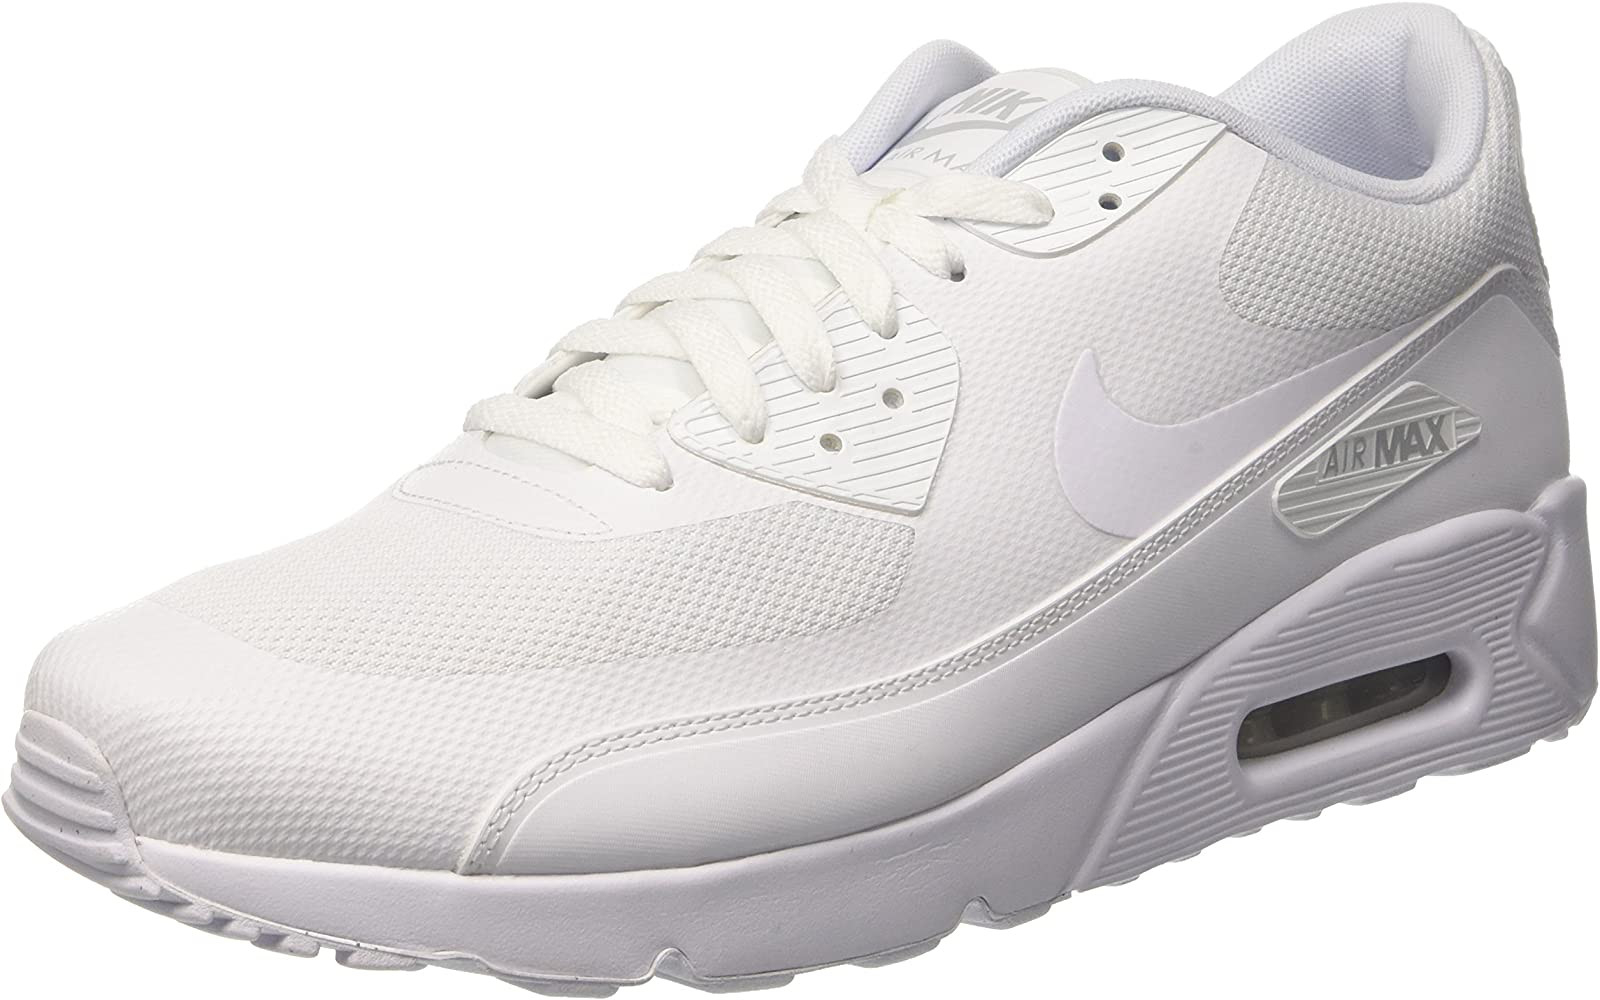 save off 9bcaf aaf2d Mens Air Max 90 Ultra 2.0 Se Low Top Lace Up Running, White, Size 9.0 Sjod